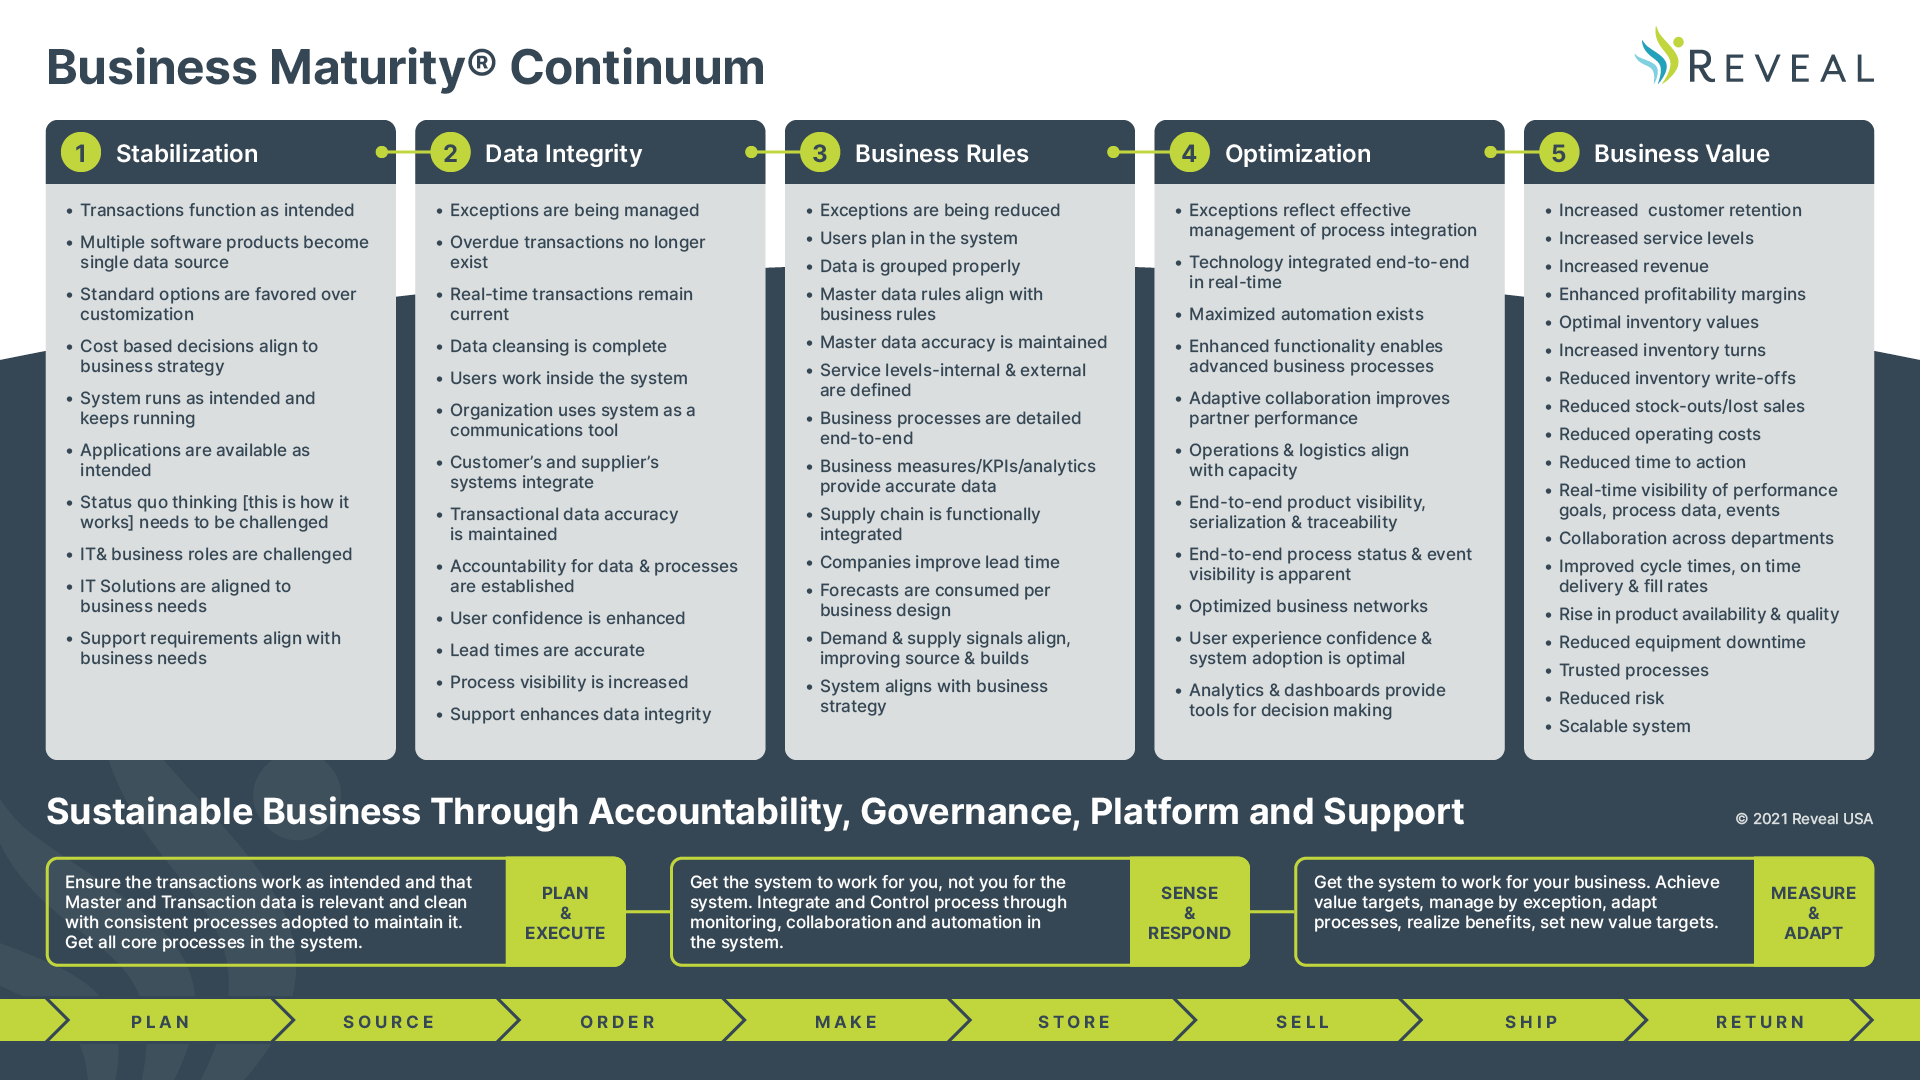 BusinessMaturity® Continuum